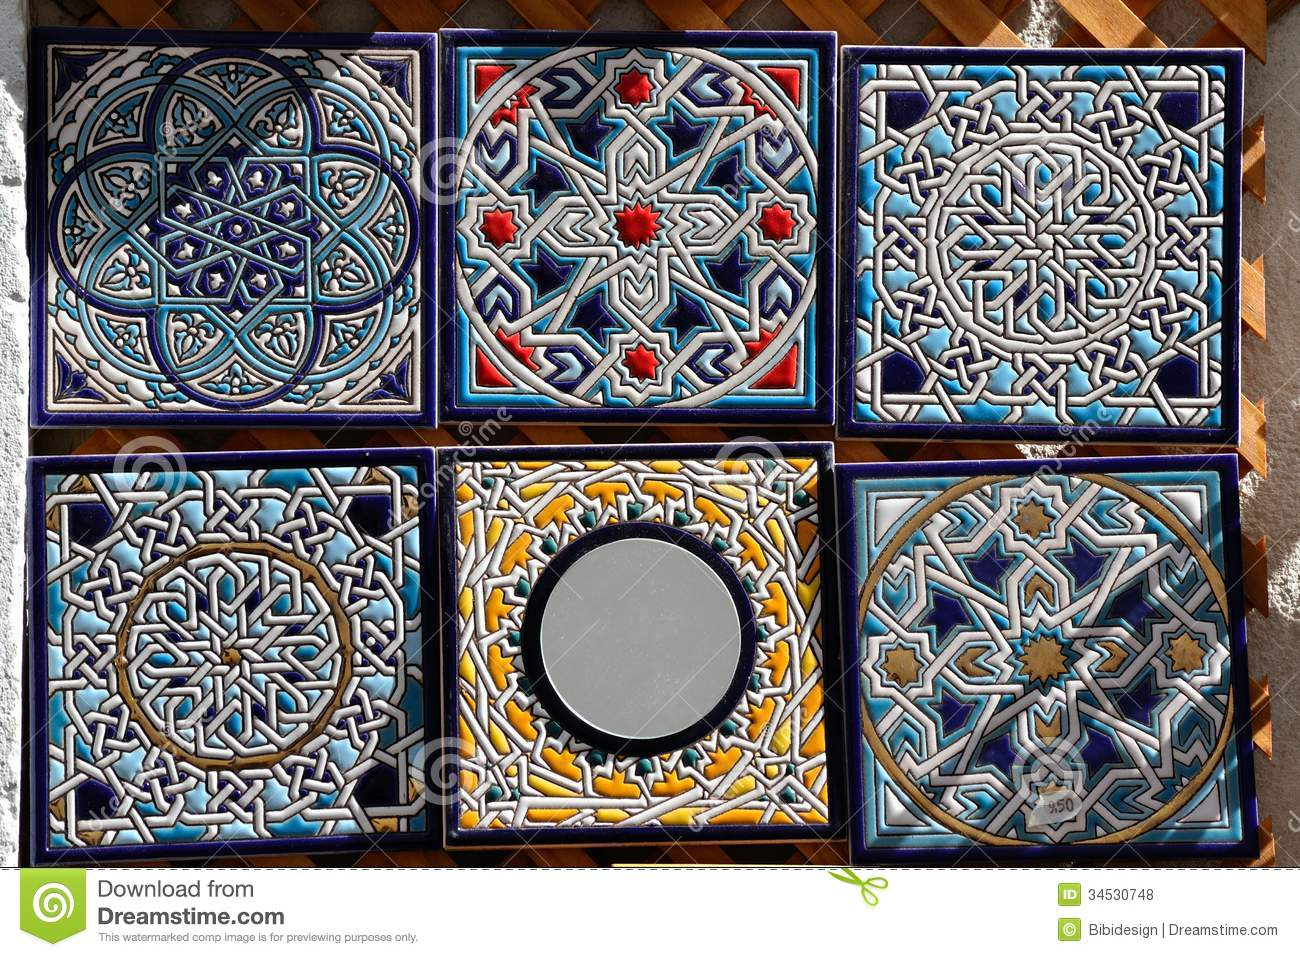 Decorative hand painted ceramic tiles for sale stock photo image decorative hand painted ceramic tiles for sale dailygadgetfo Choice Image